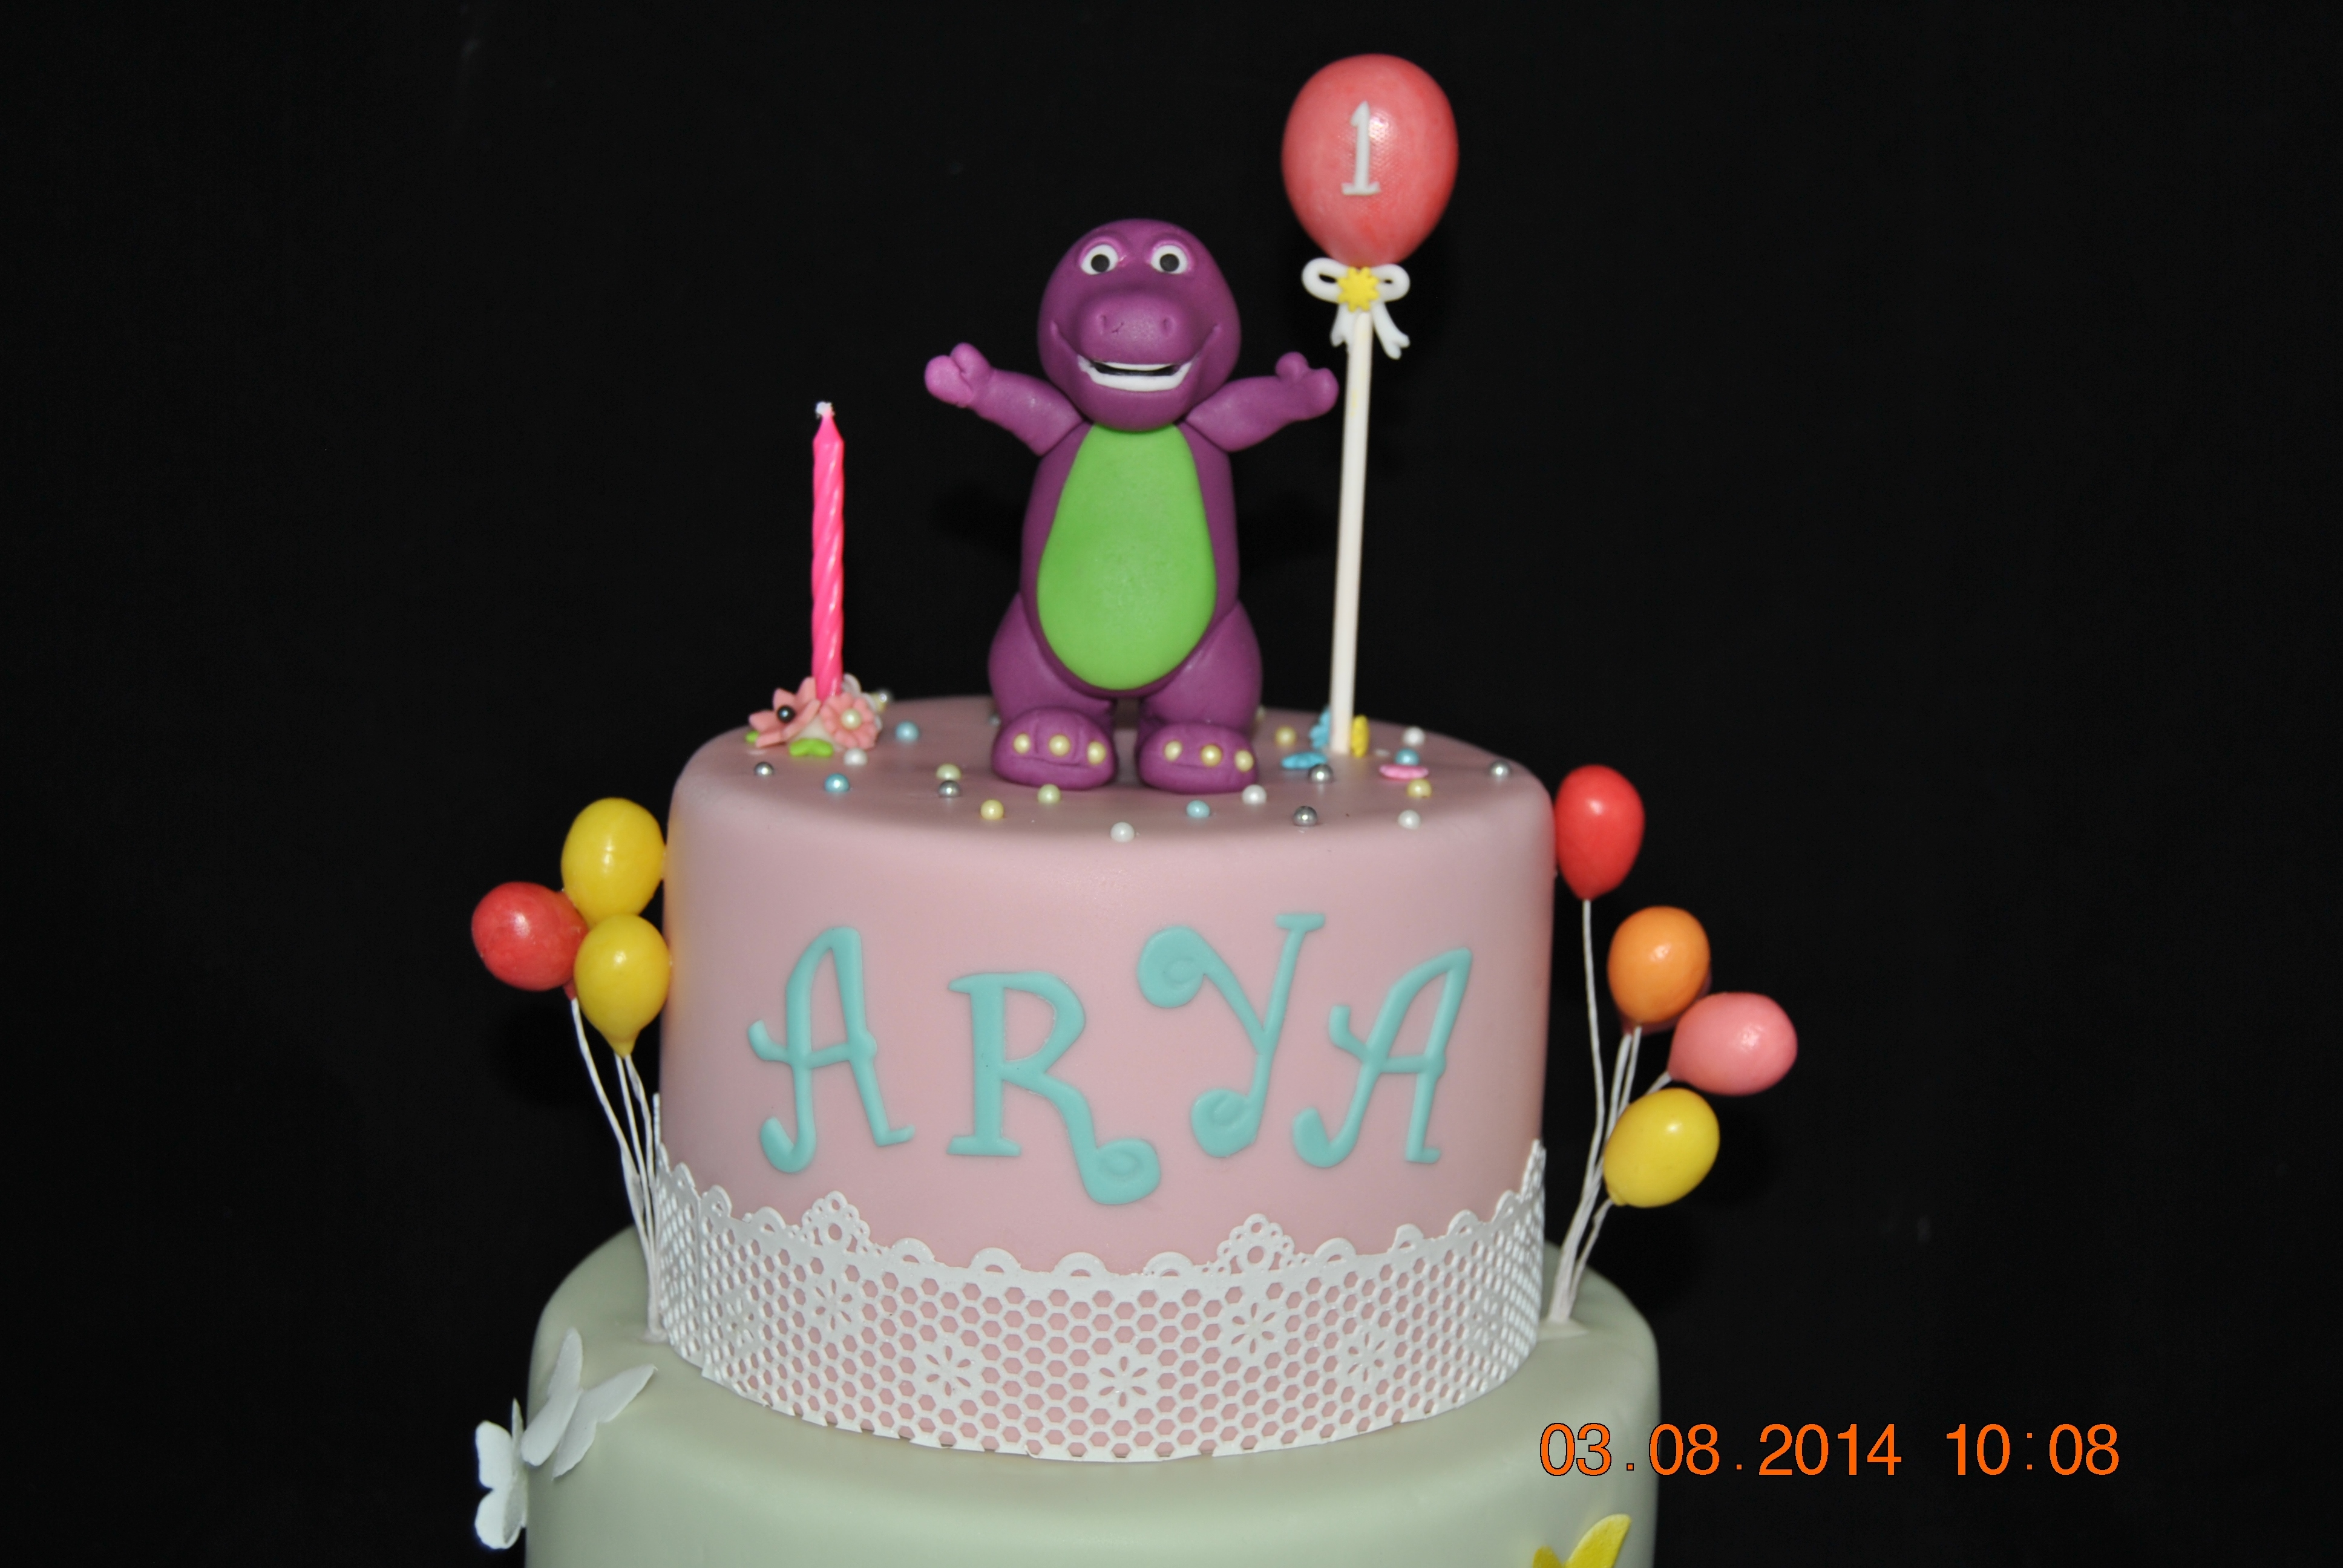 My First Time To Make Barney Theme Cake Chocolate With Buttercream Frosting Ganache And MMF Balloons Were Made From Fruitella